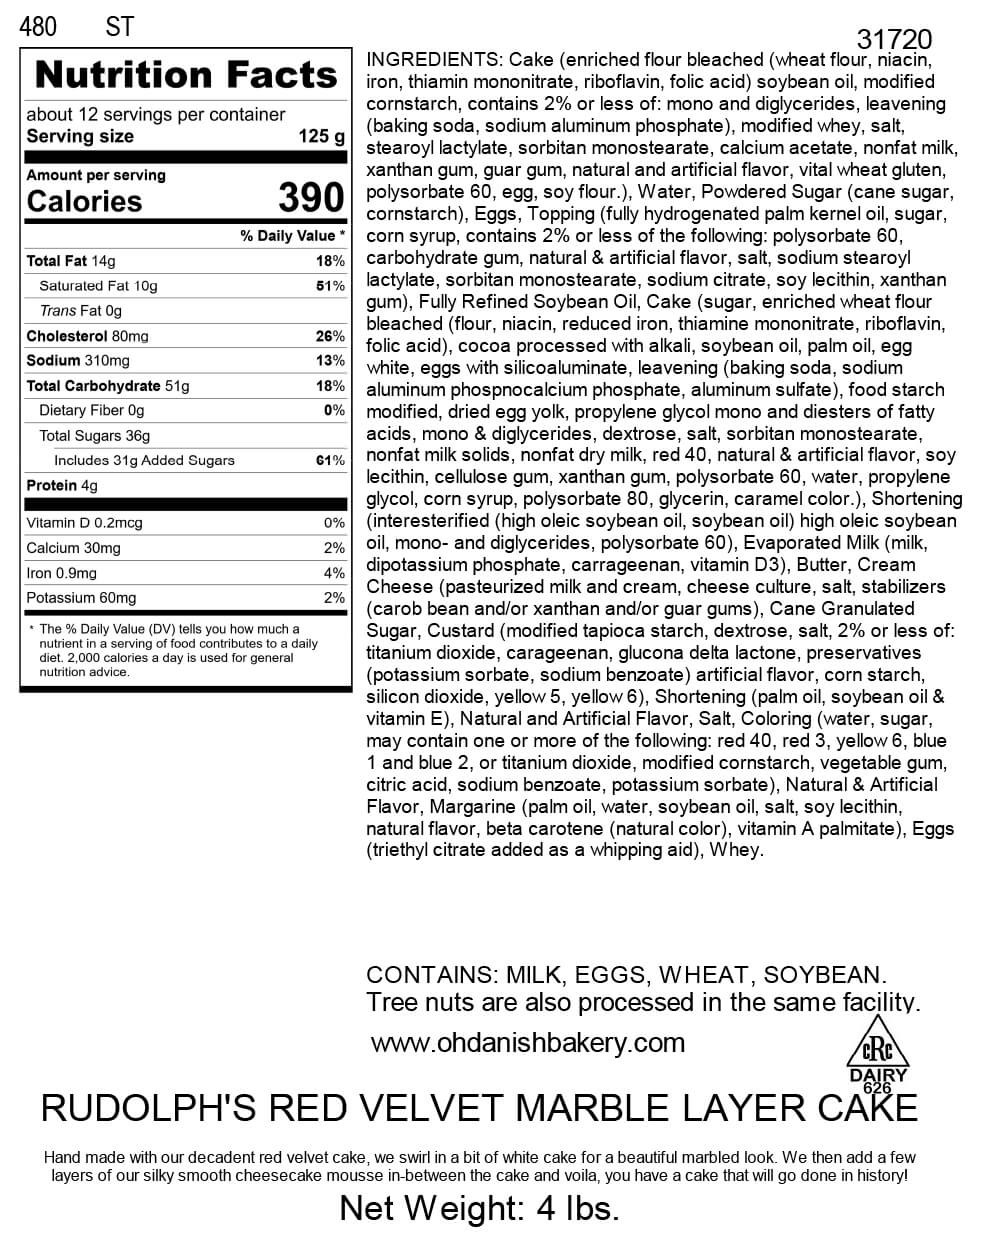 Nutritional Label for Rudolph's Red Velvet Marble Layer Cake